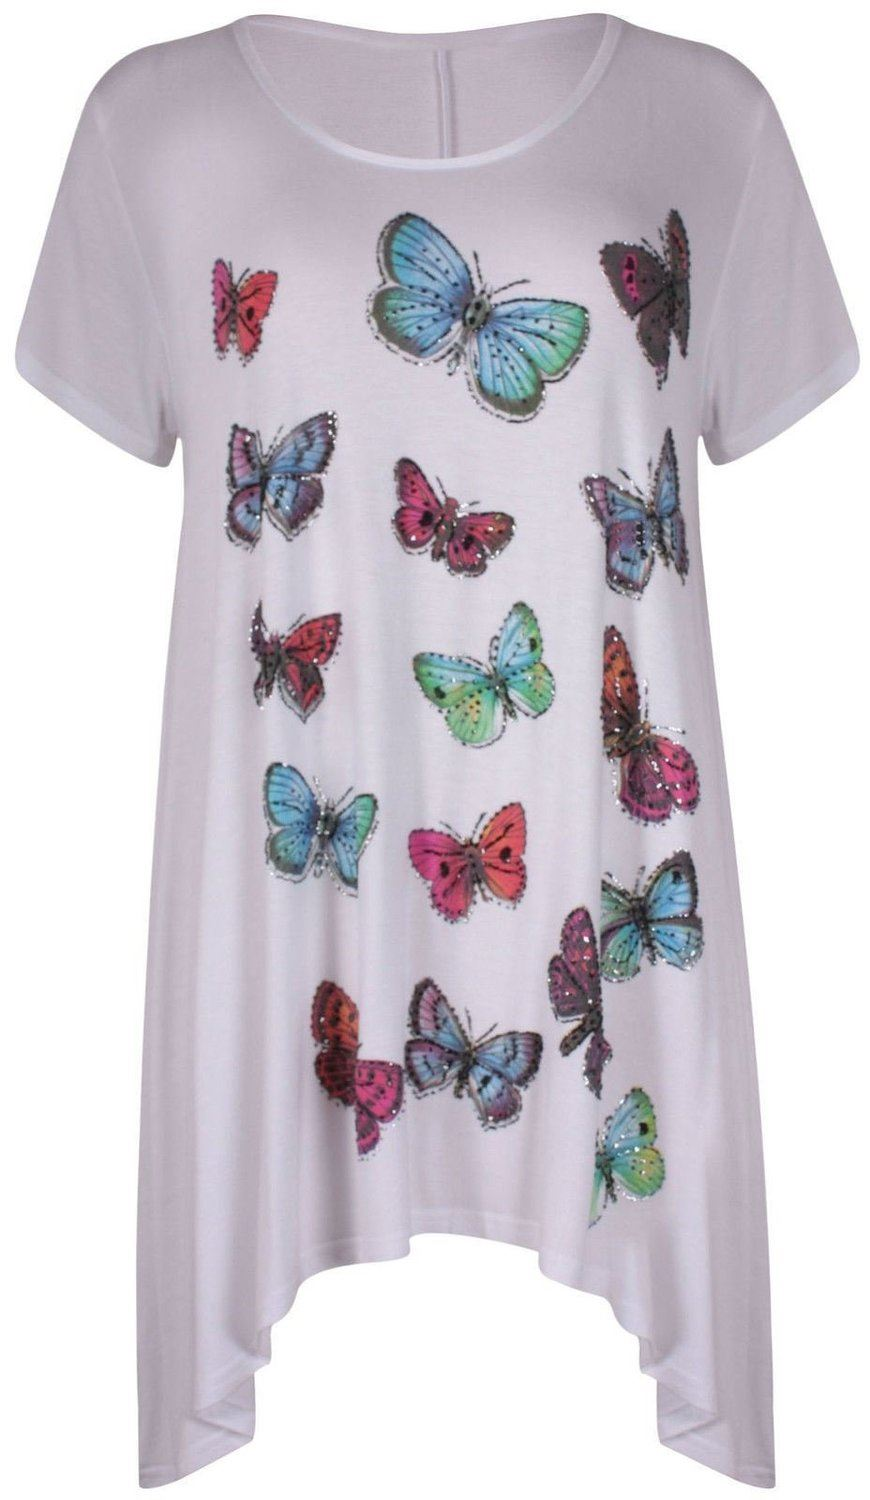 aec89dec4e2b3 Womens Beaded Butterfly Print Stretch Tunic Hanky Hem T-shirt Plus Size  Uk14-28 White UK 14. About this product. Picture 1 of 2  Picture 2 of 2